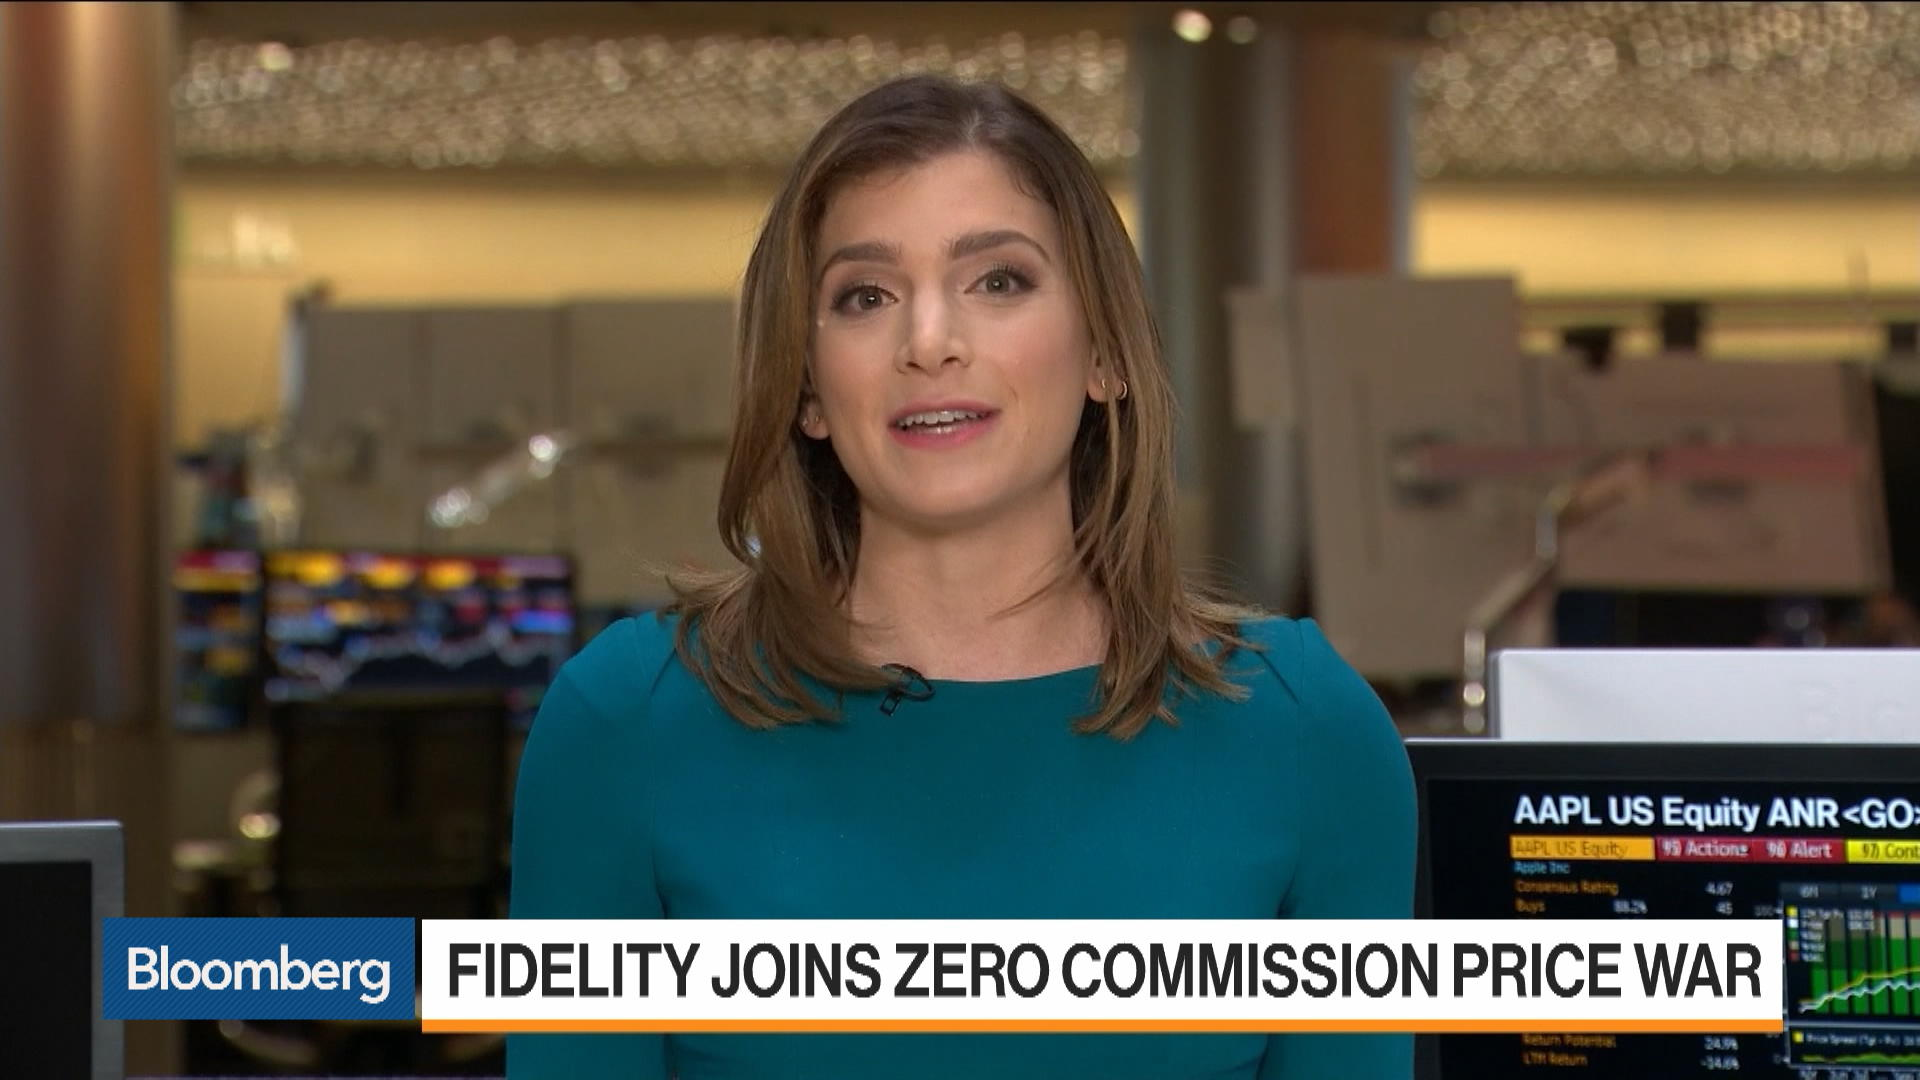 Fidelity Joins Zero Commission Price War